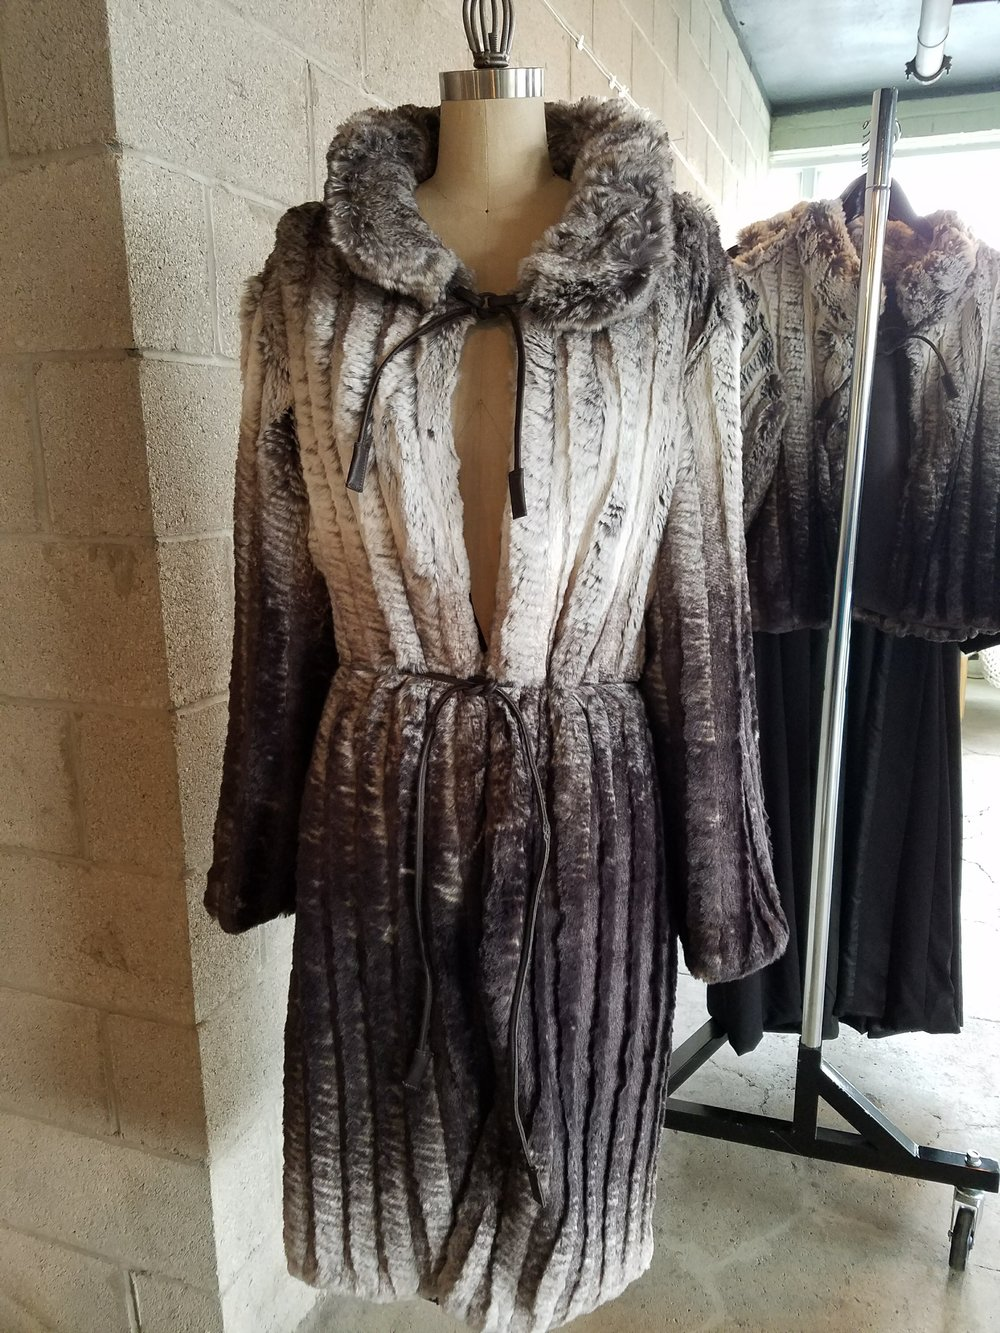 Full faux fur coat by Designer Leslie Pilling